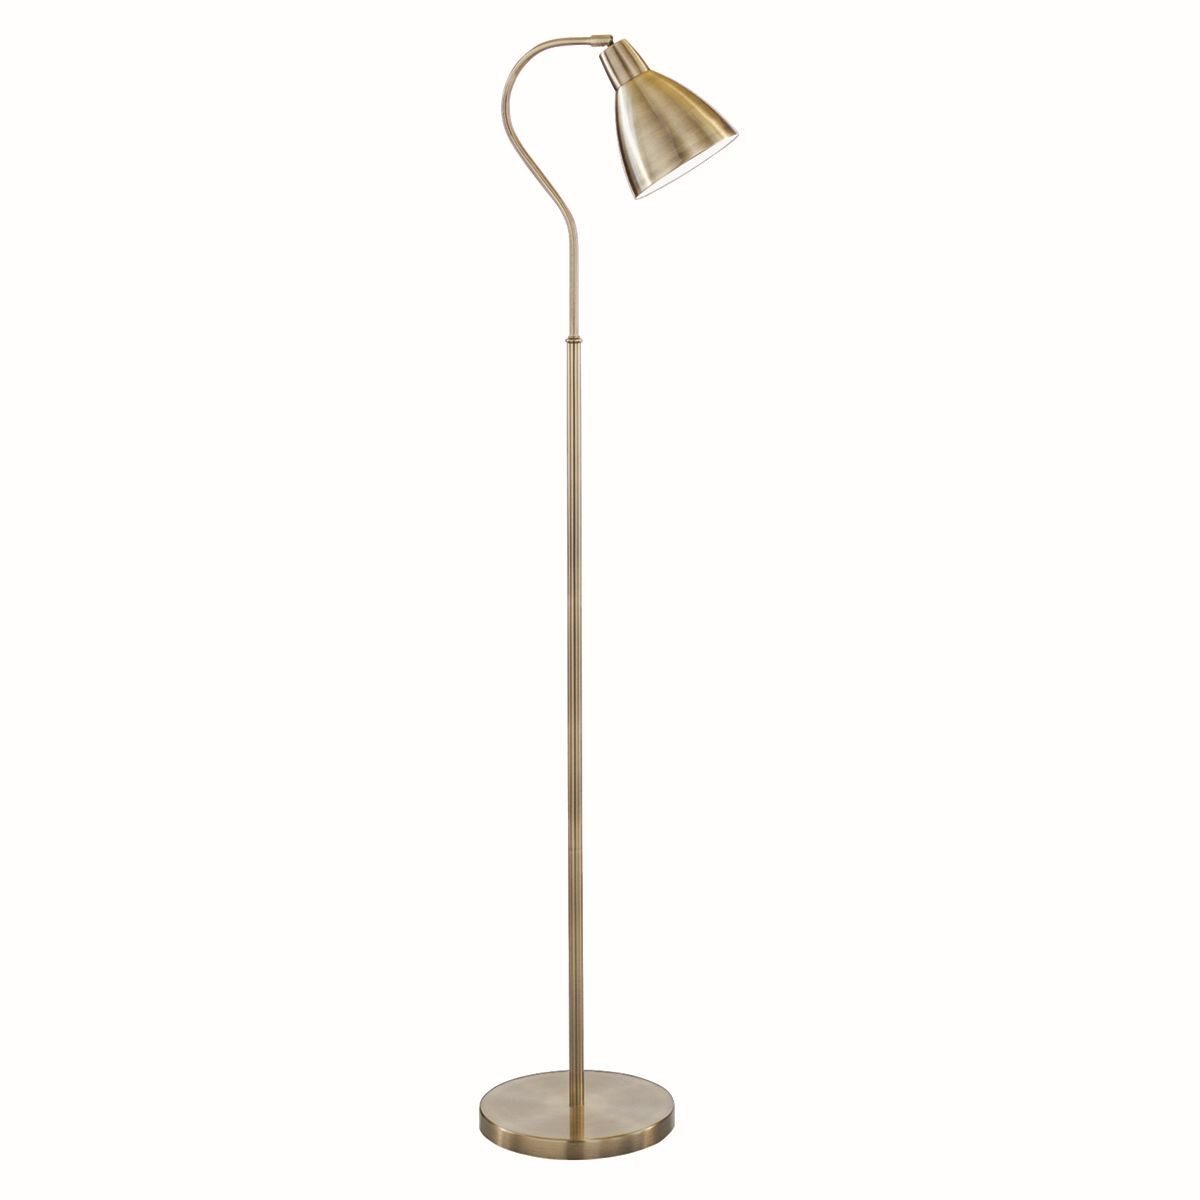 Brass Floor Lamp Amazon: Traditional Floor Lamp